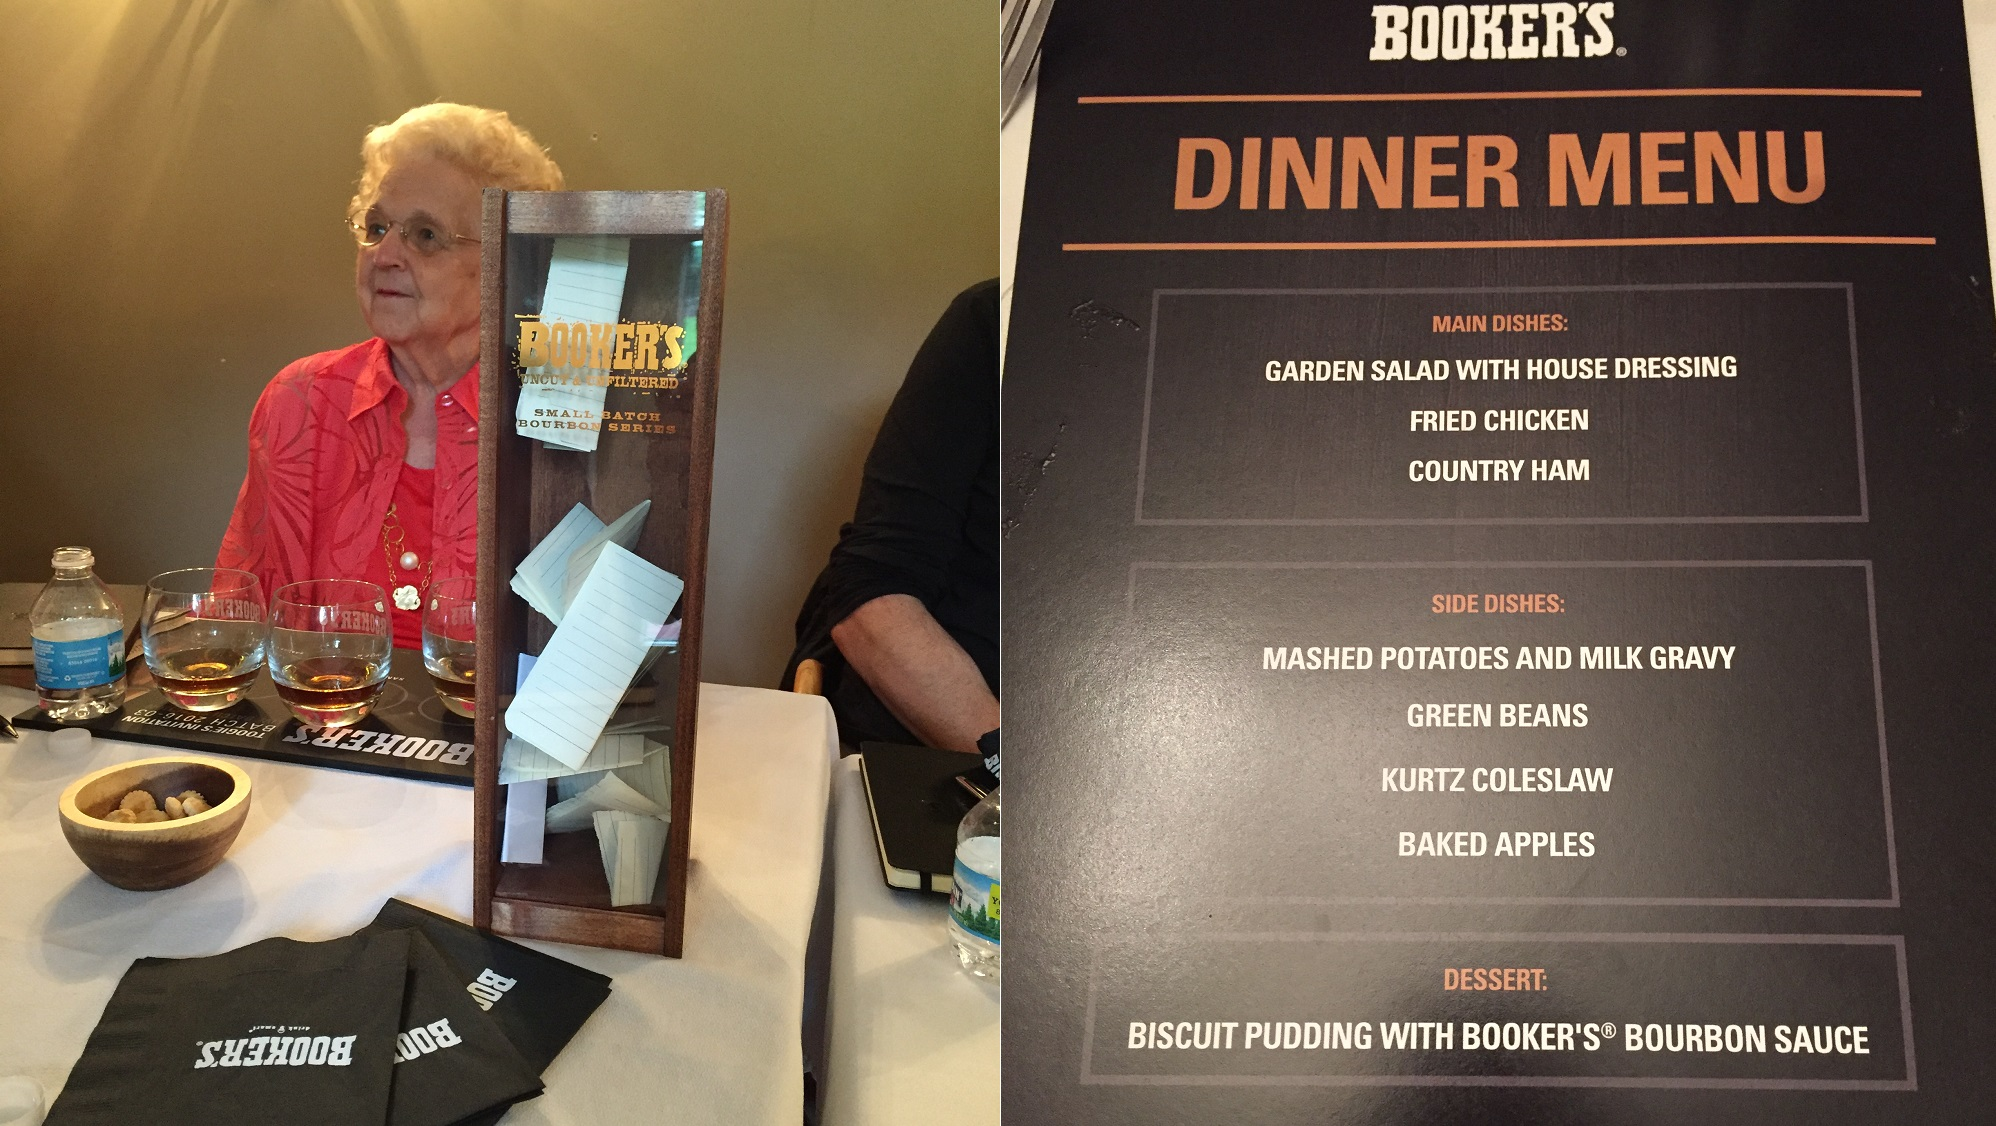 Bookers dinner